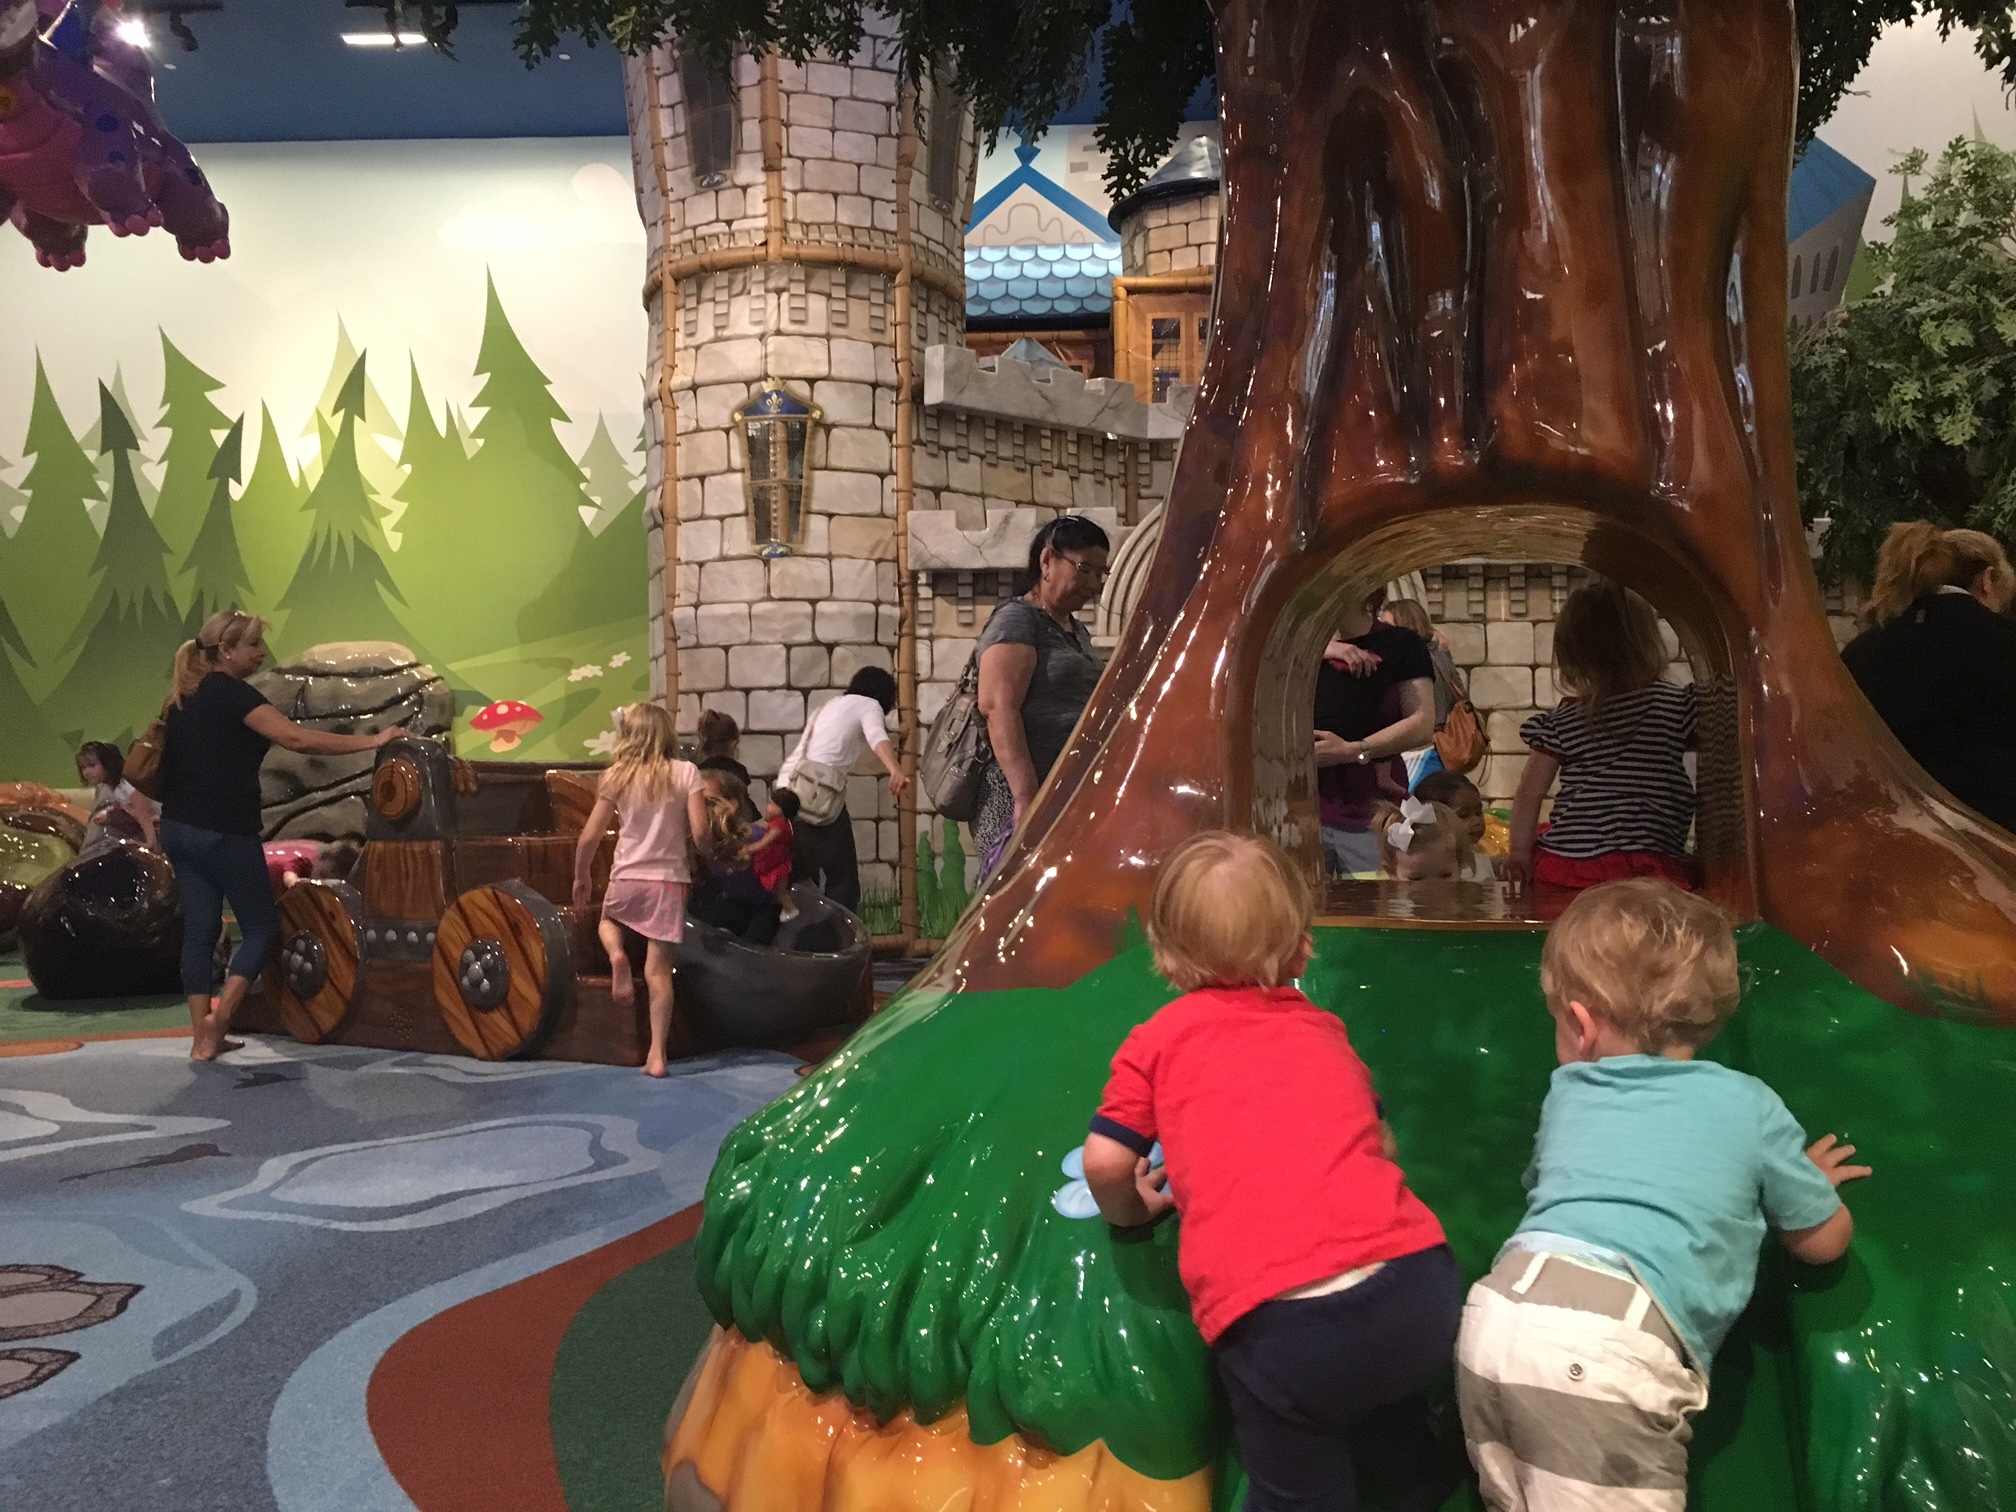 Fun Indoor Play Spaces in Houston | MommyPoppins - Things to do in ...